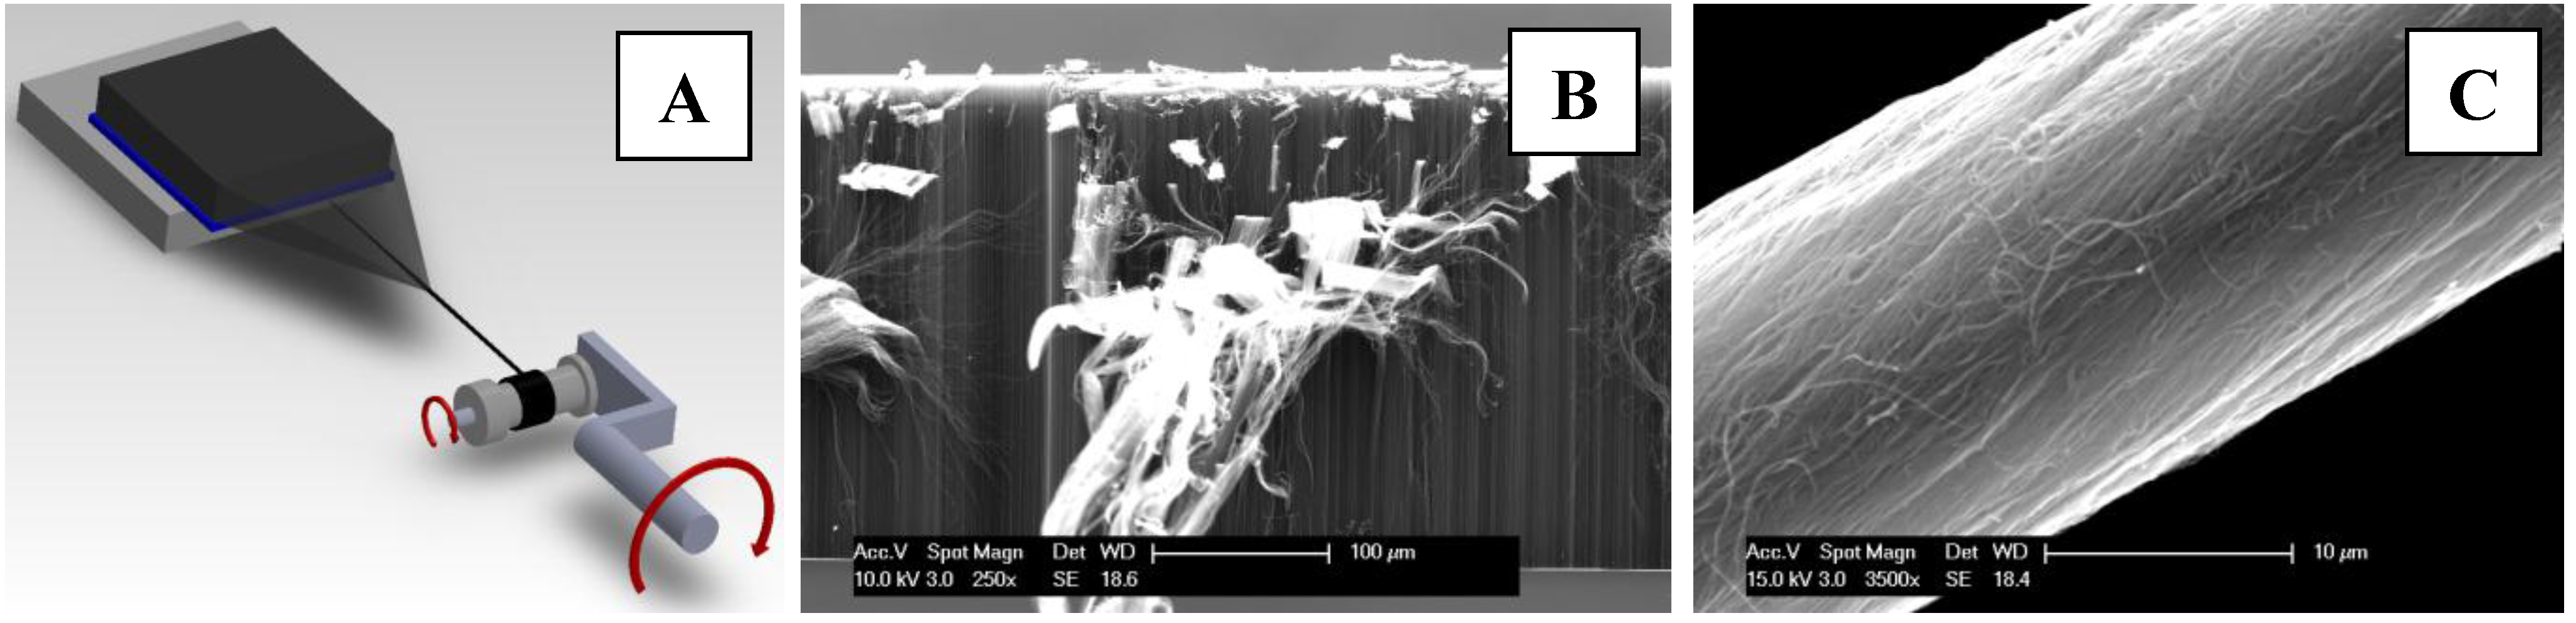 a study on nanotechnologies and the potential applications of nanotube fibers and carbon nanotubes c There are several potential applications for carbon nanotubes  the article reports on the study of cytotoxicity of c 60  carbon-nanotube fibers,.